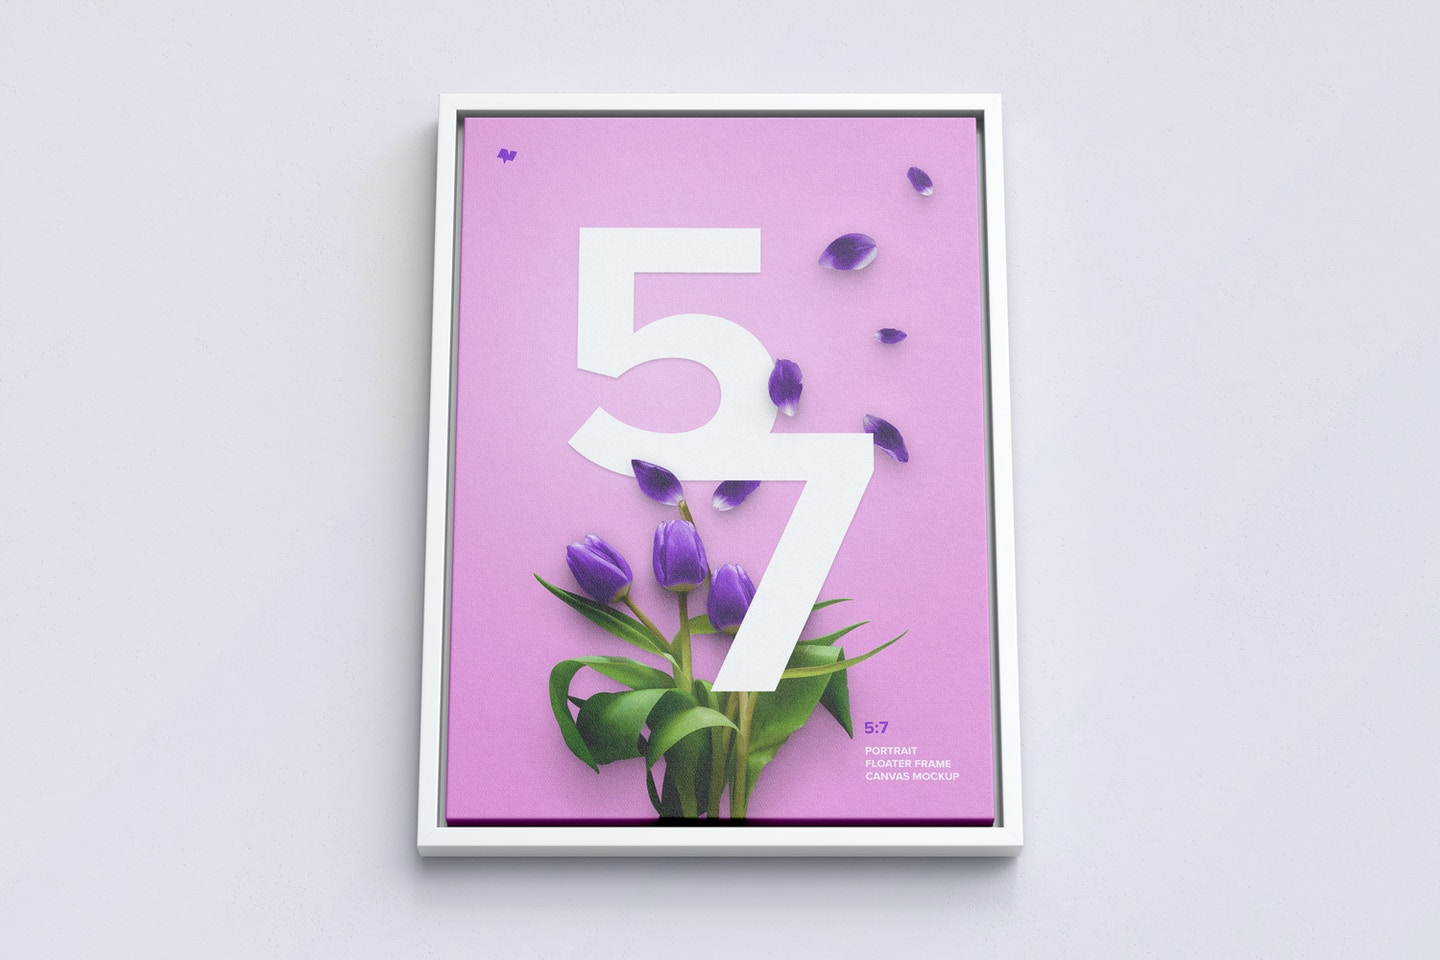 5:7 Portrait Canvas Mockup in Floater Frame, Bottom Front View